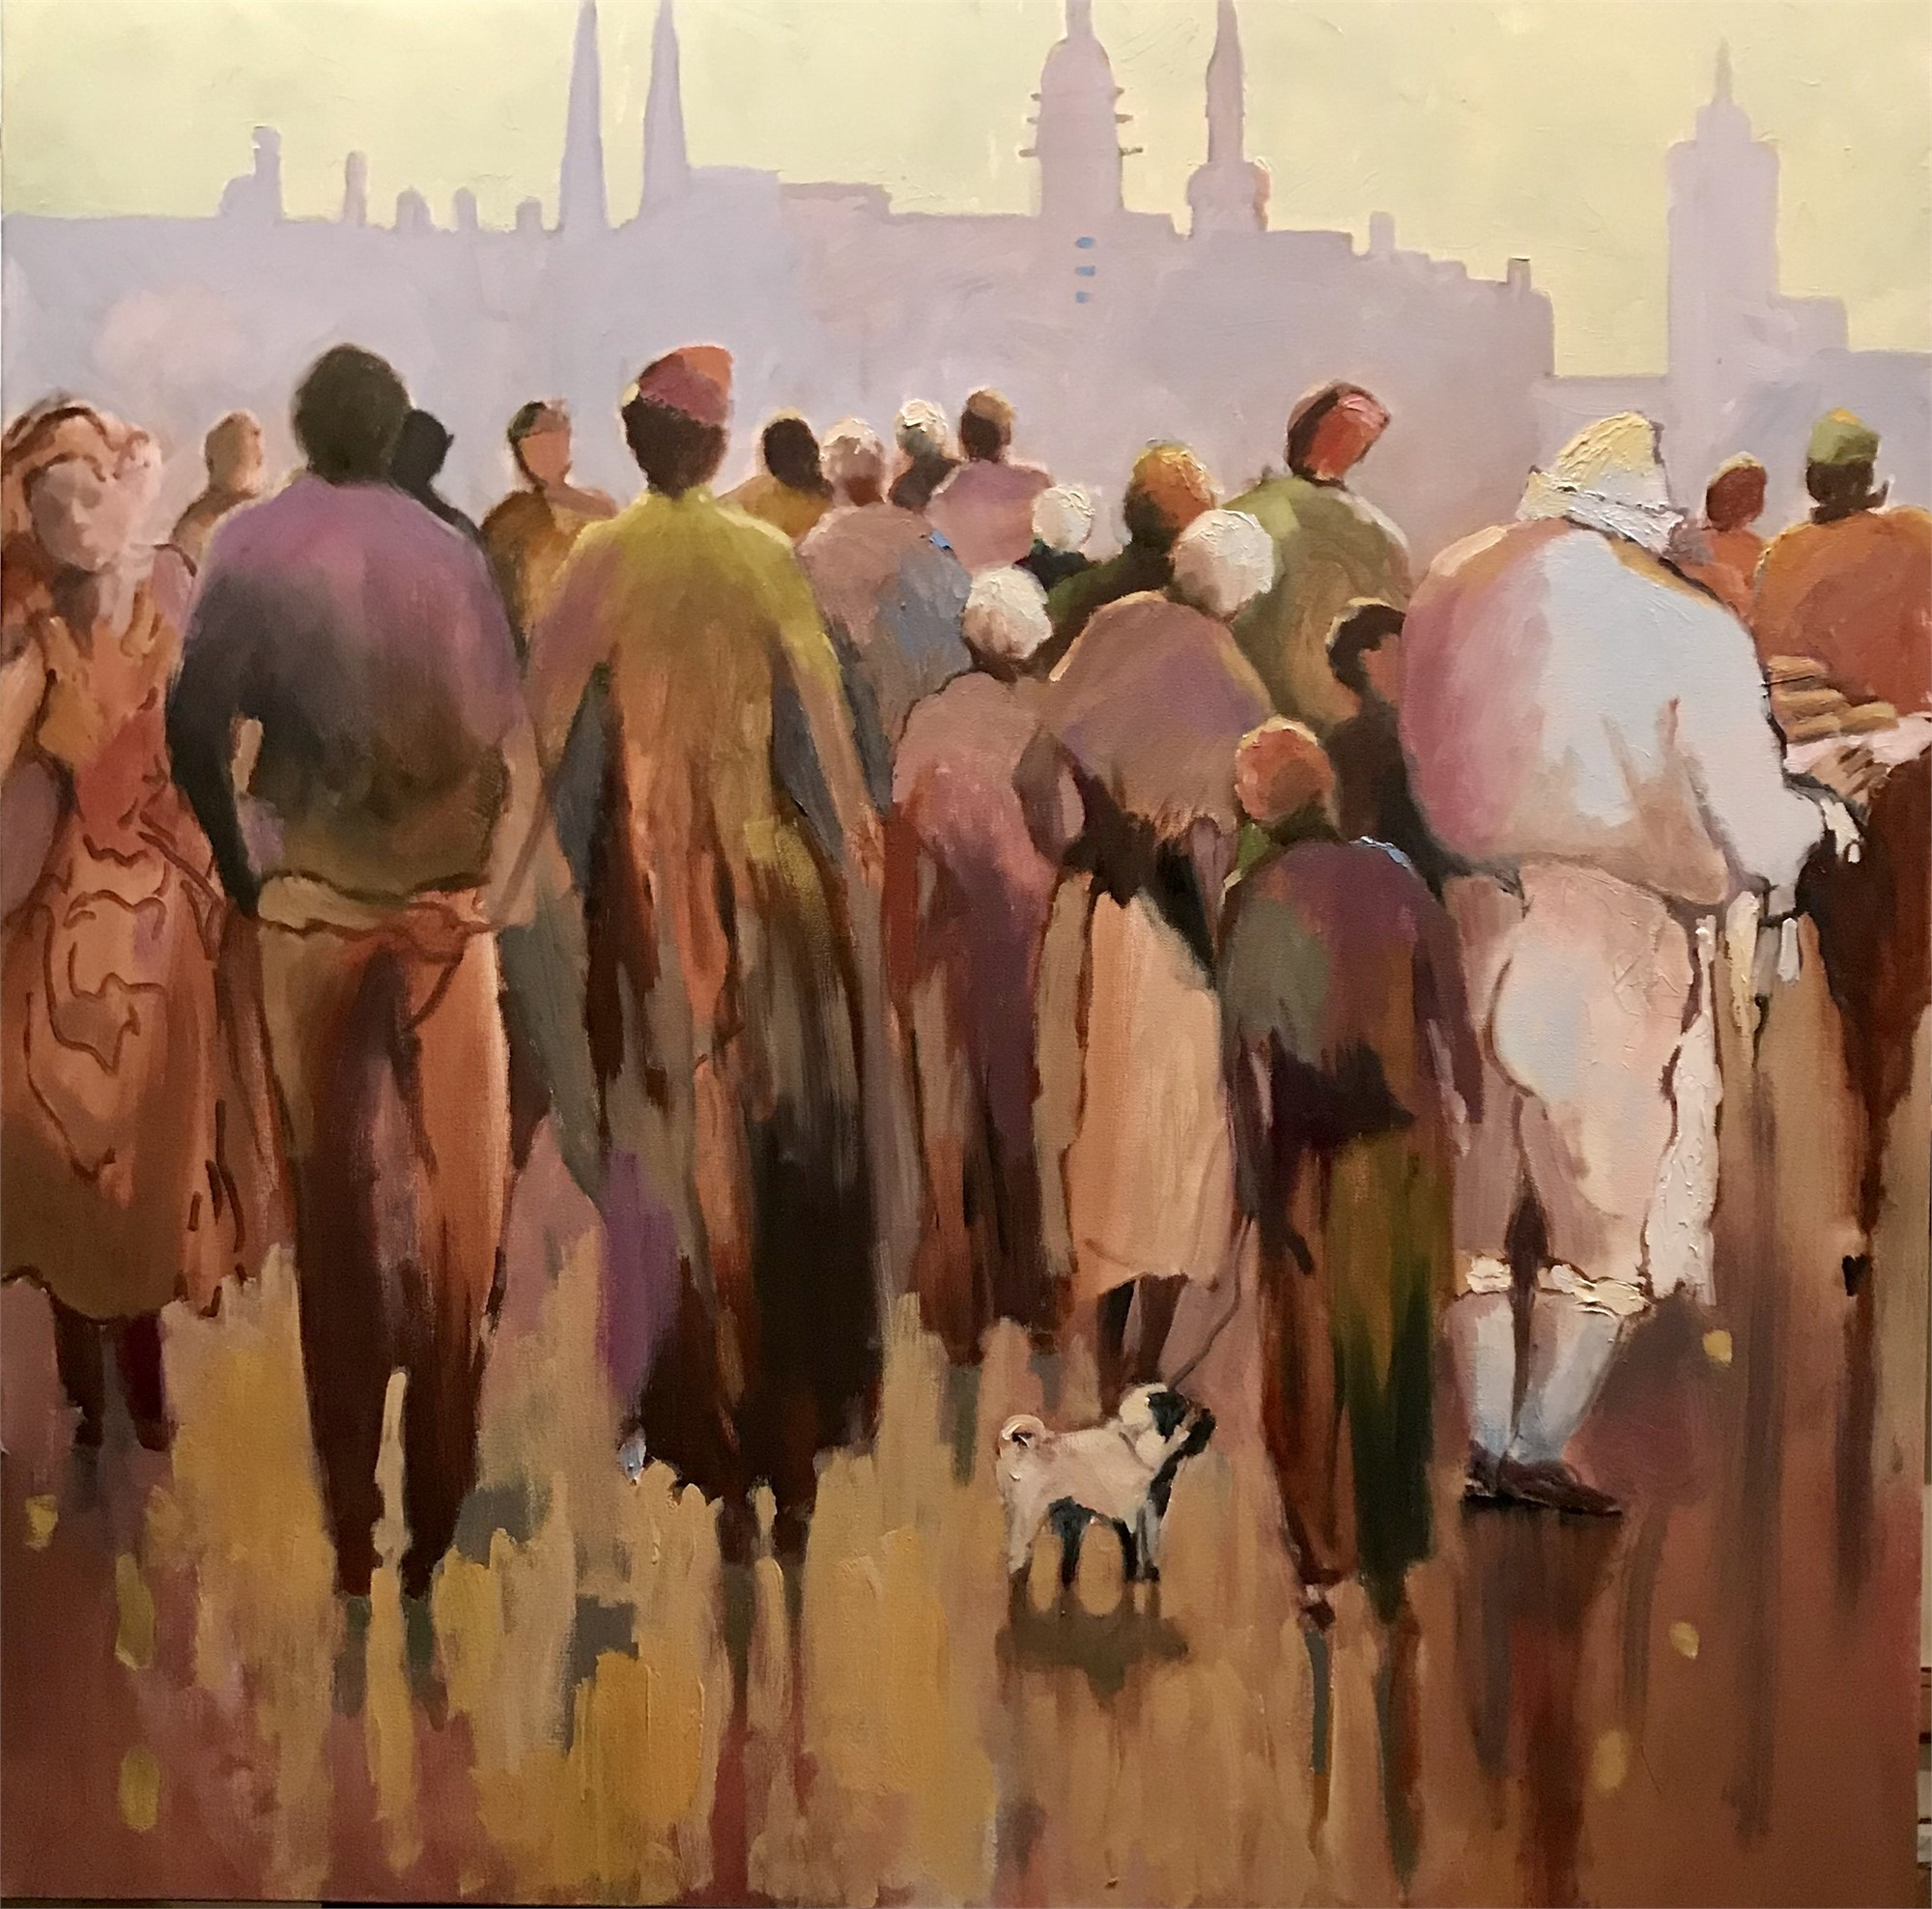 The Baker's Cakes by Betsy Havens